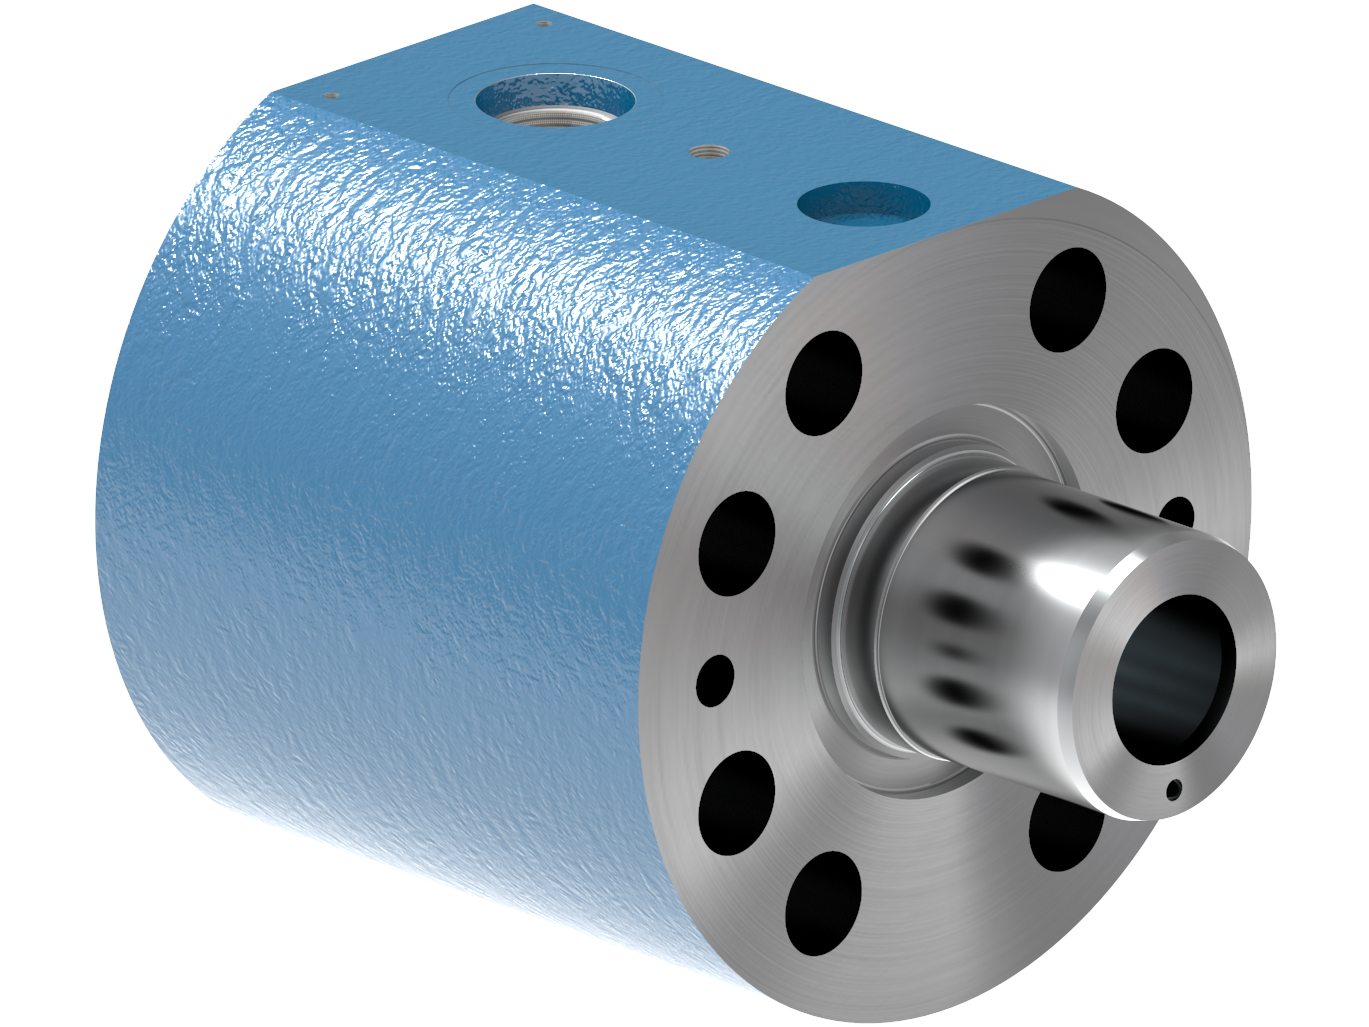 A rendering of a Cylinder Part from the KB100